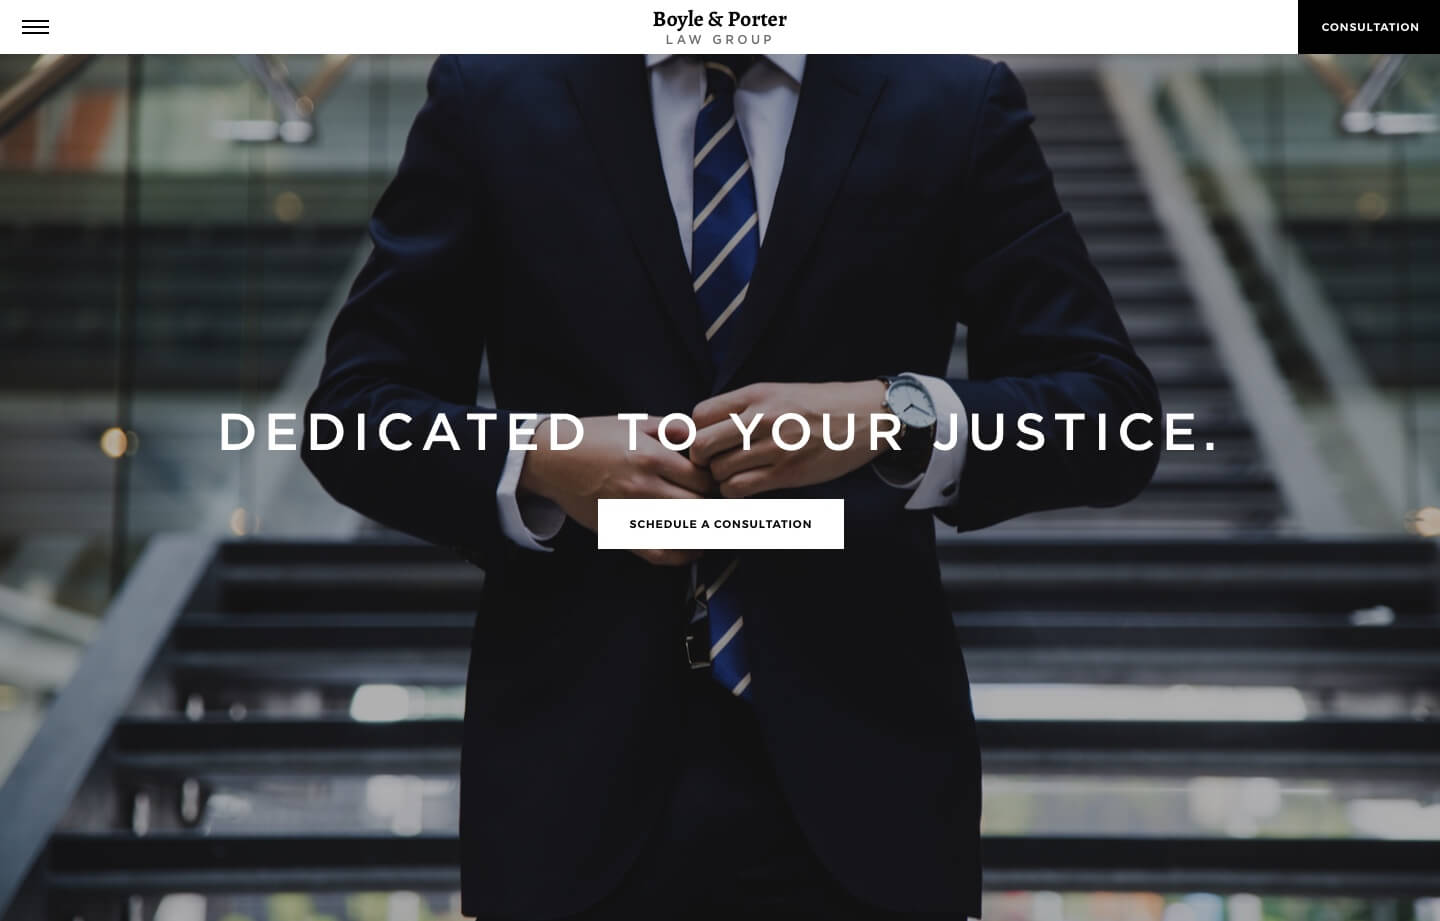 Law firm website for boyle and porter